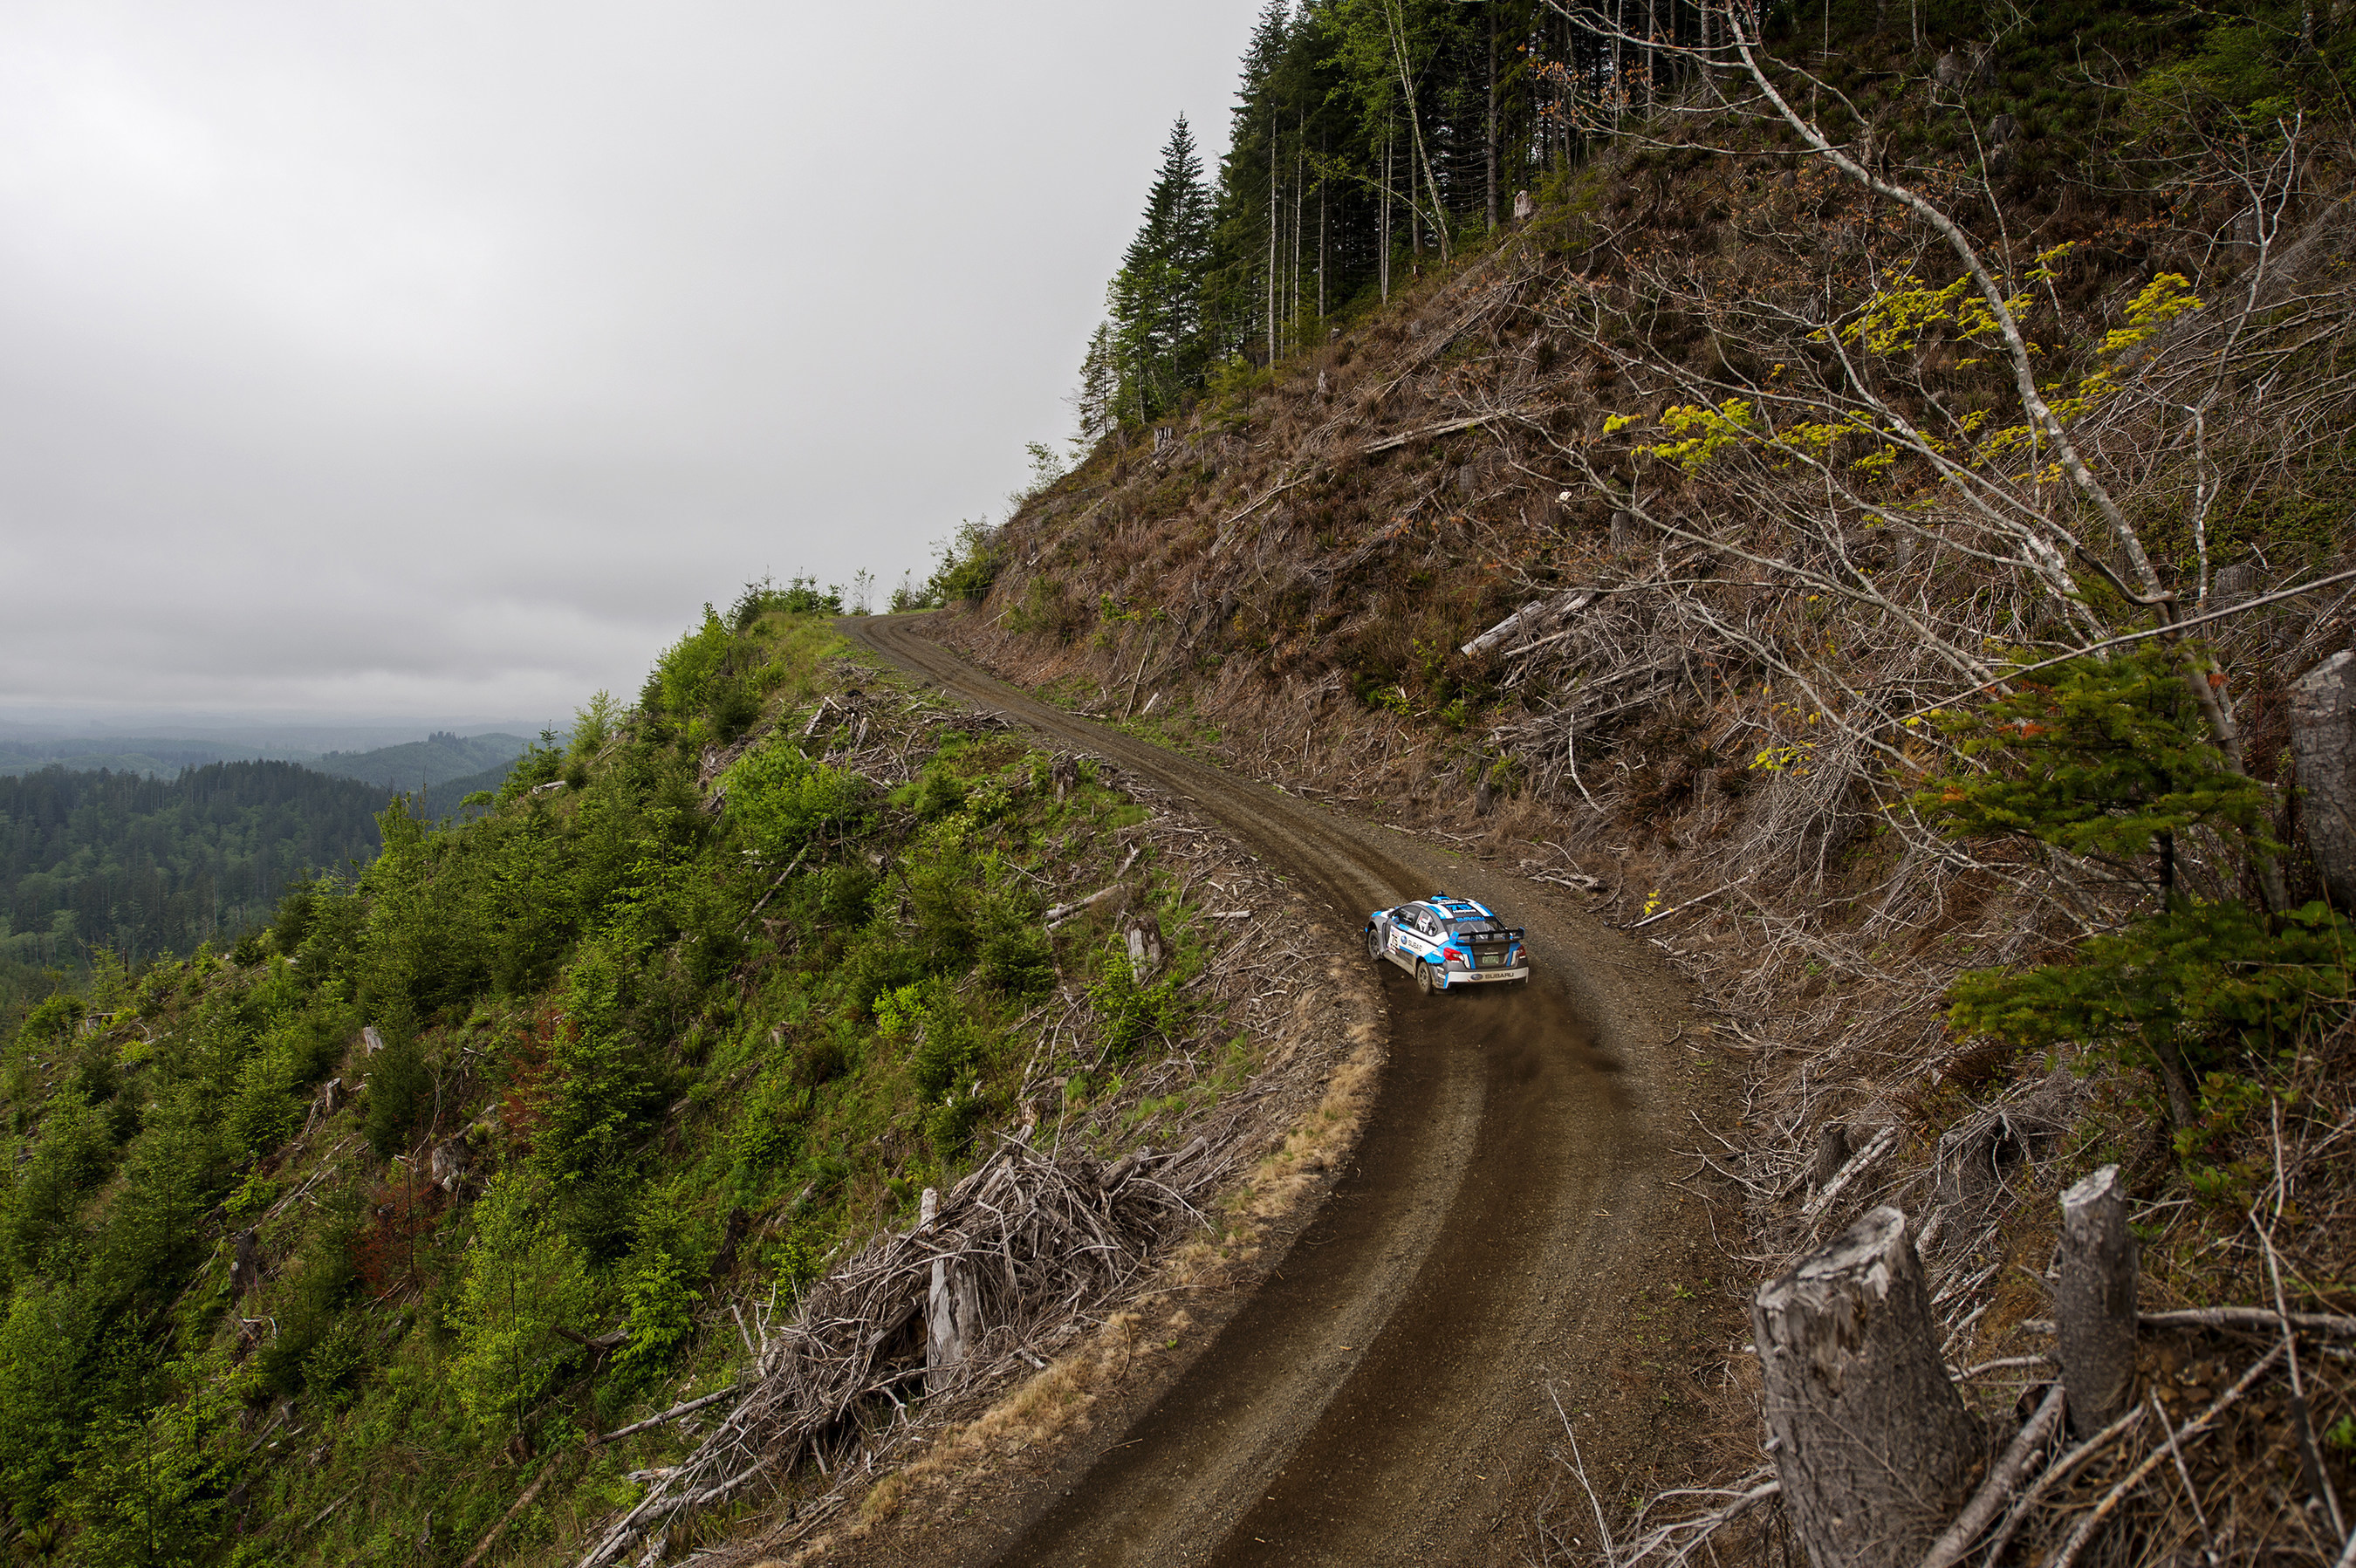 Subaru Rally Team USA Driver David Higgins Stays Undefeated with Victory at Legendary Olympus Rally